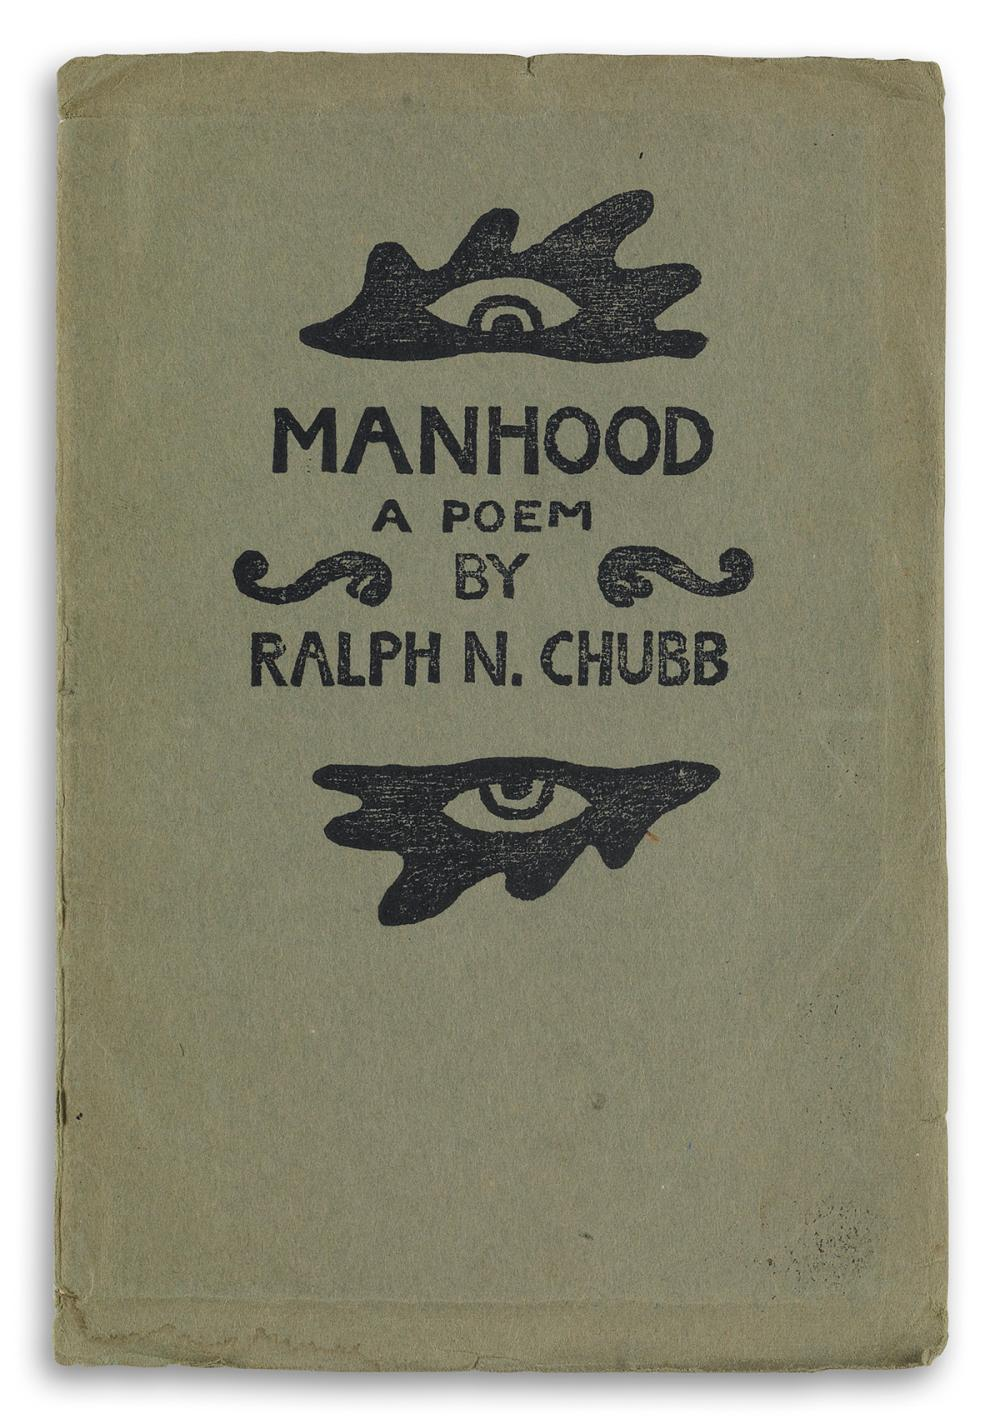 RALPH CHUBB (1892-1960)  Manhood, a Poem, Designed and Engraved by the Author,